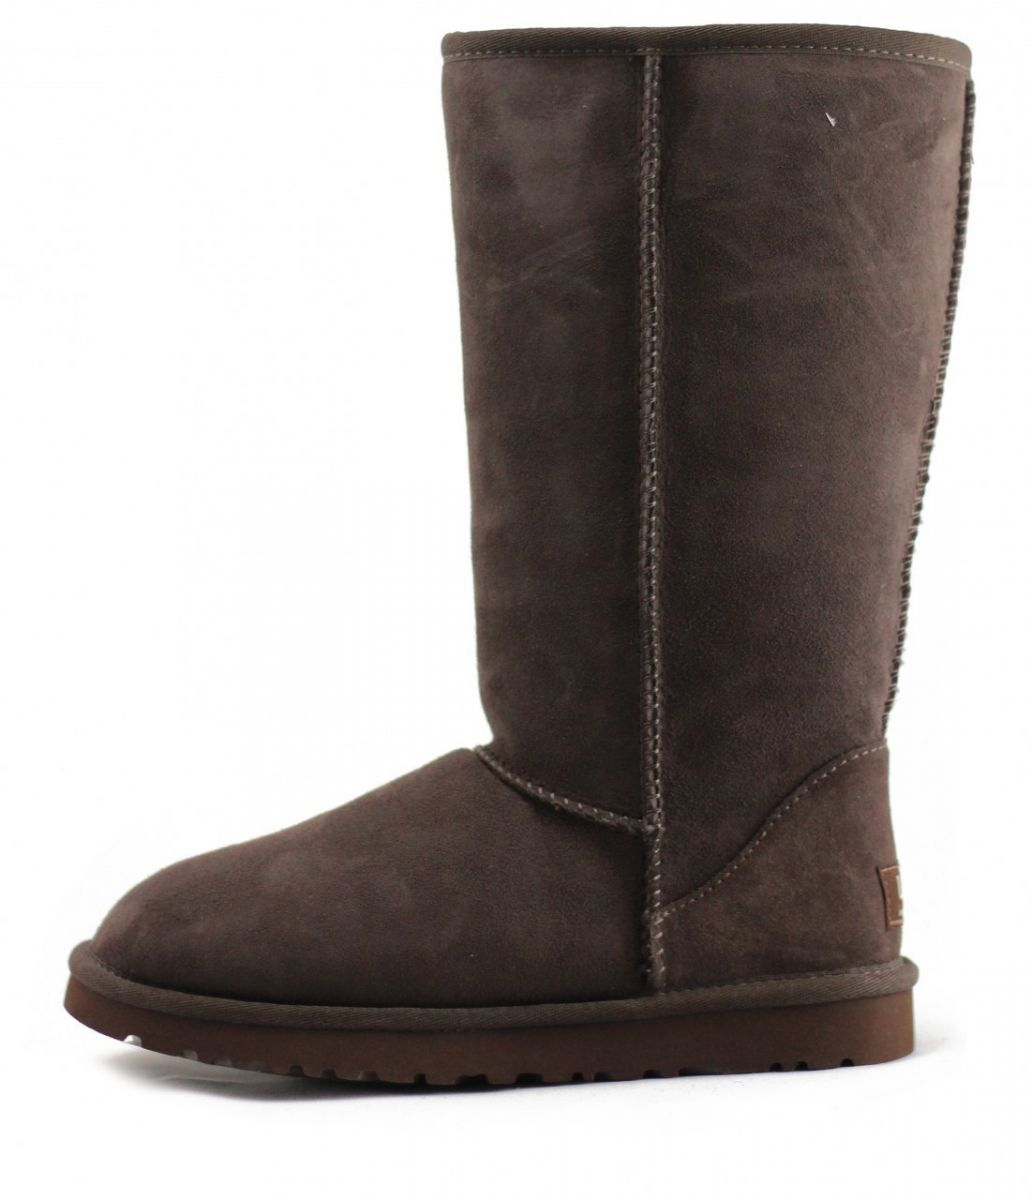 9f333d16103 UGG Australia for Women: Classic Tall Chocolate Boots Brown